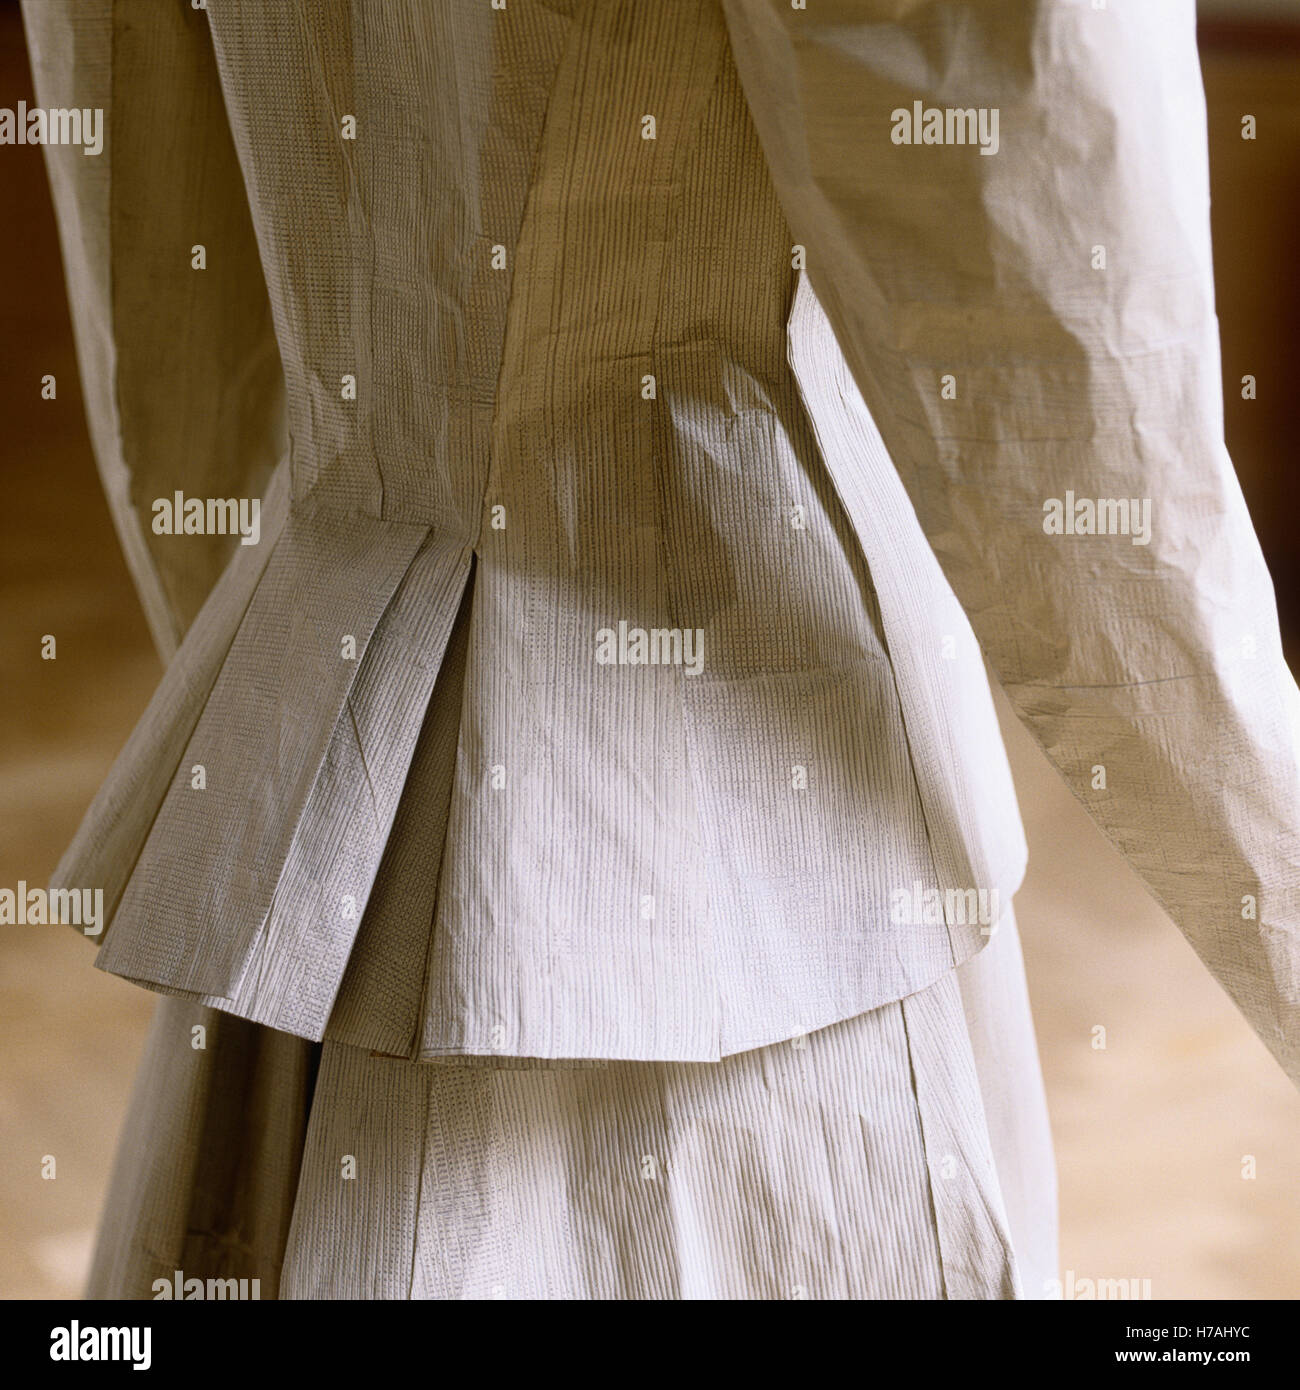 Pleated jacket detail, historical replica paper dress by Isabelle de Borchgrave - Stock Image